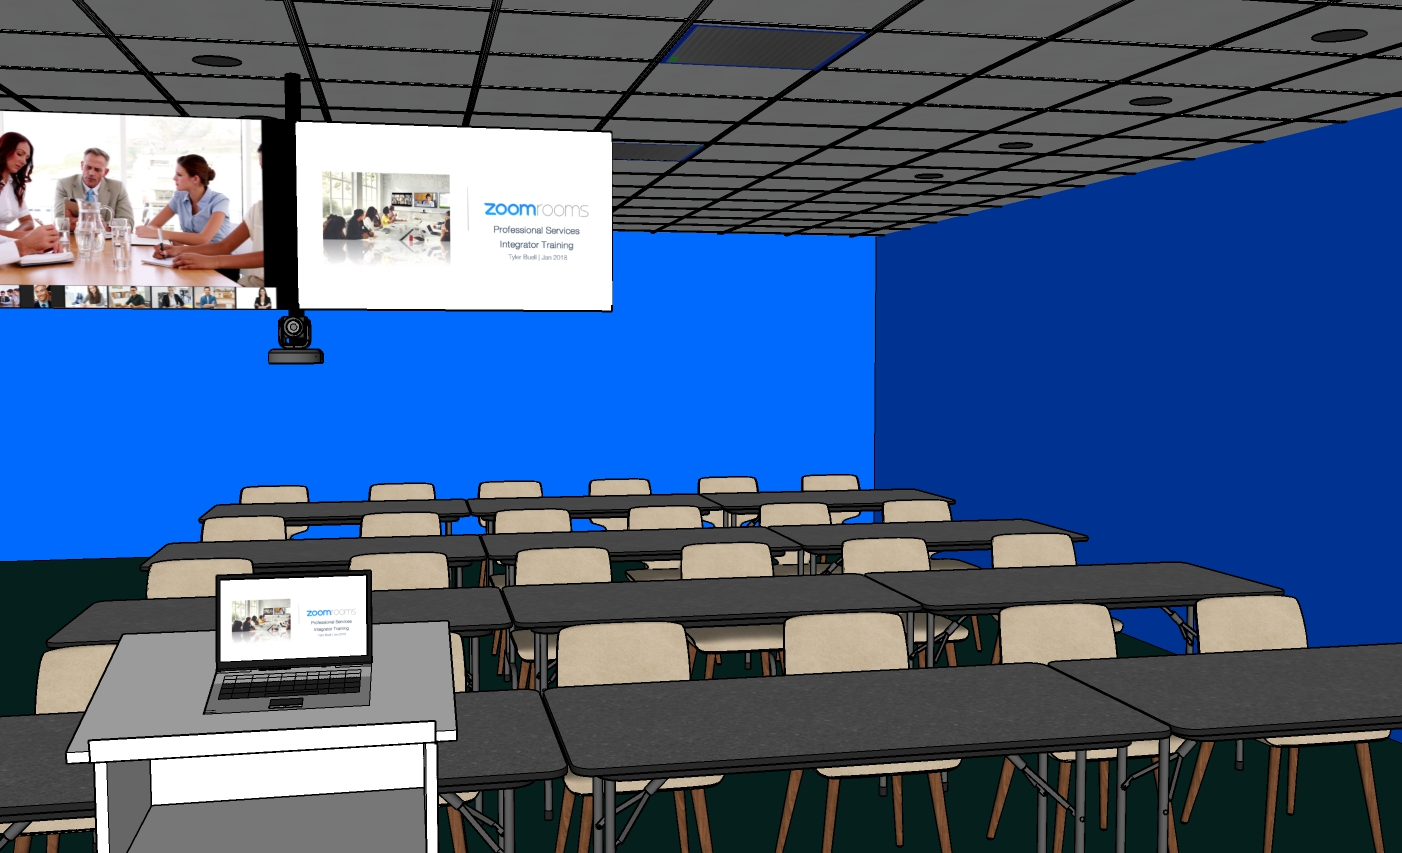 Zoom_Rooms_ProAV_Training_Classroom__Presenter_.jpg